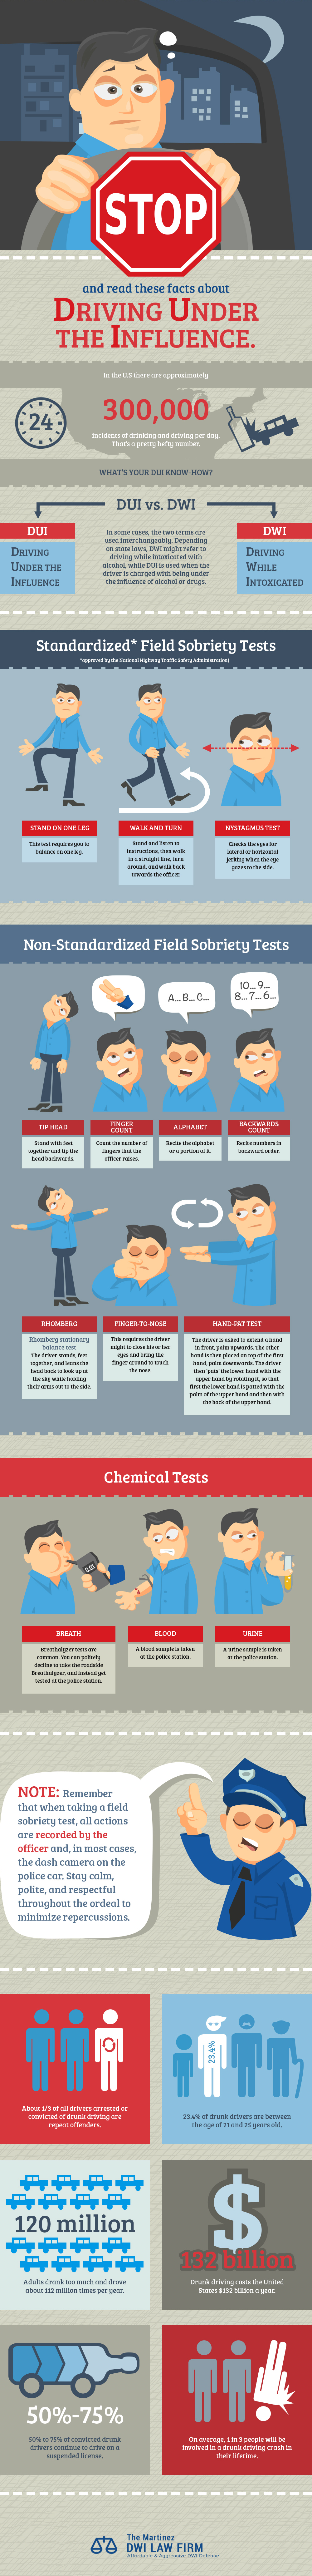 Facts About Being Under the Influence